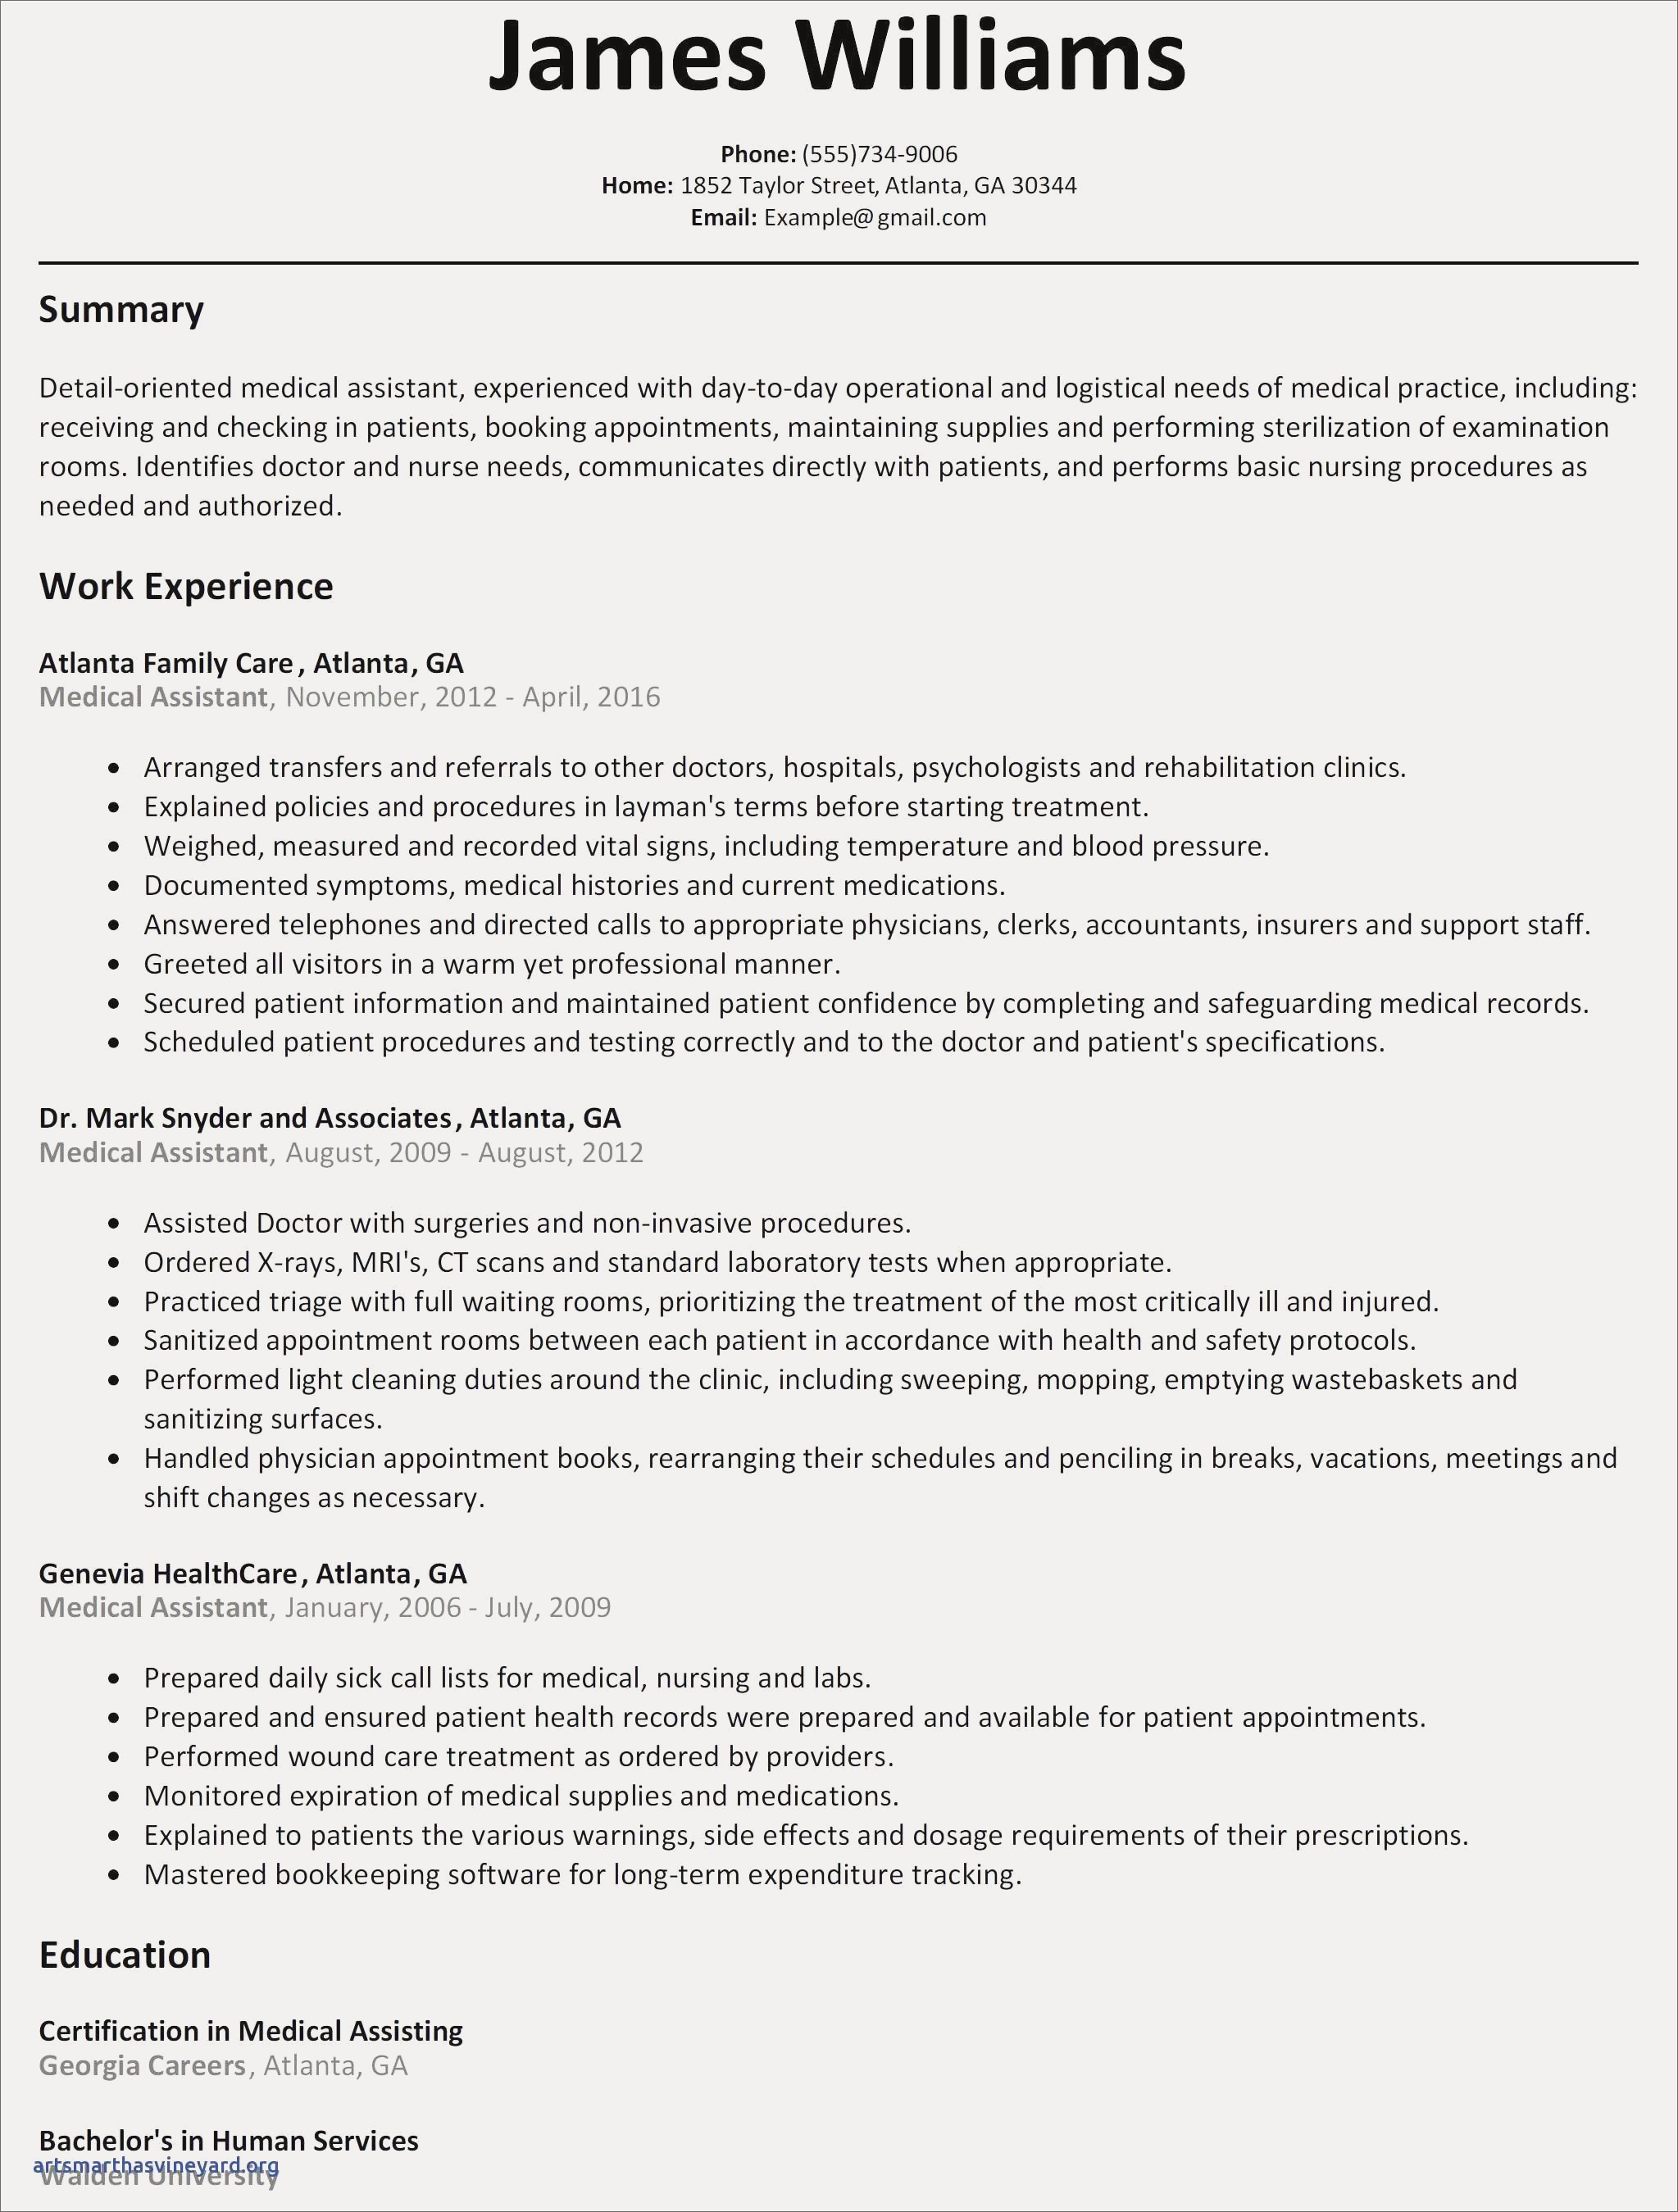 human services resume template Collection-Human Services Resume Samples Best Retail Resume Sample Awesome Resume Template Free Word New Od From 7-o